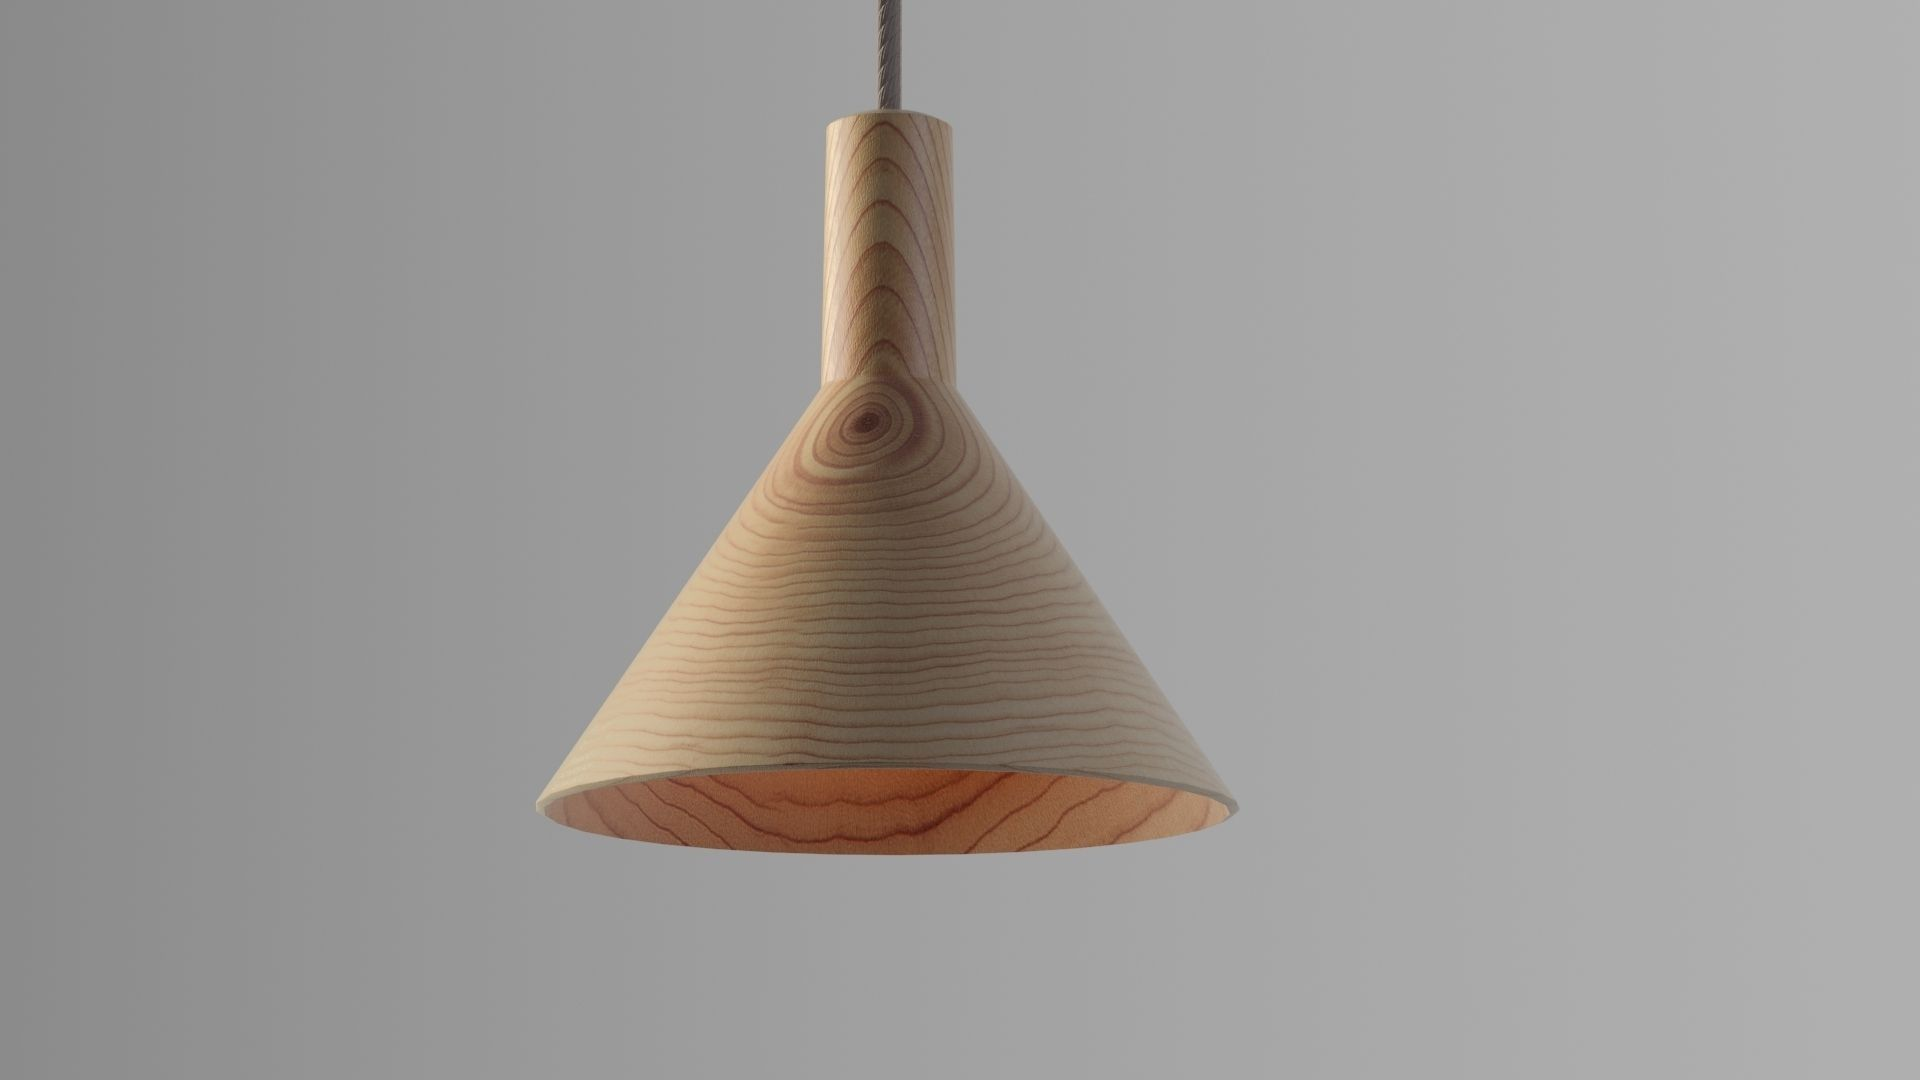 Wooden Lighting Pendants Wooden Light Pendants Collection Vol 1 3d Model Max Obj